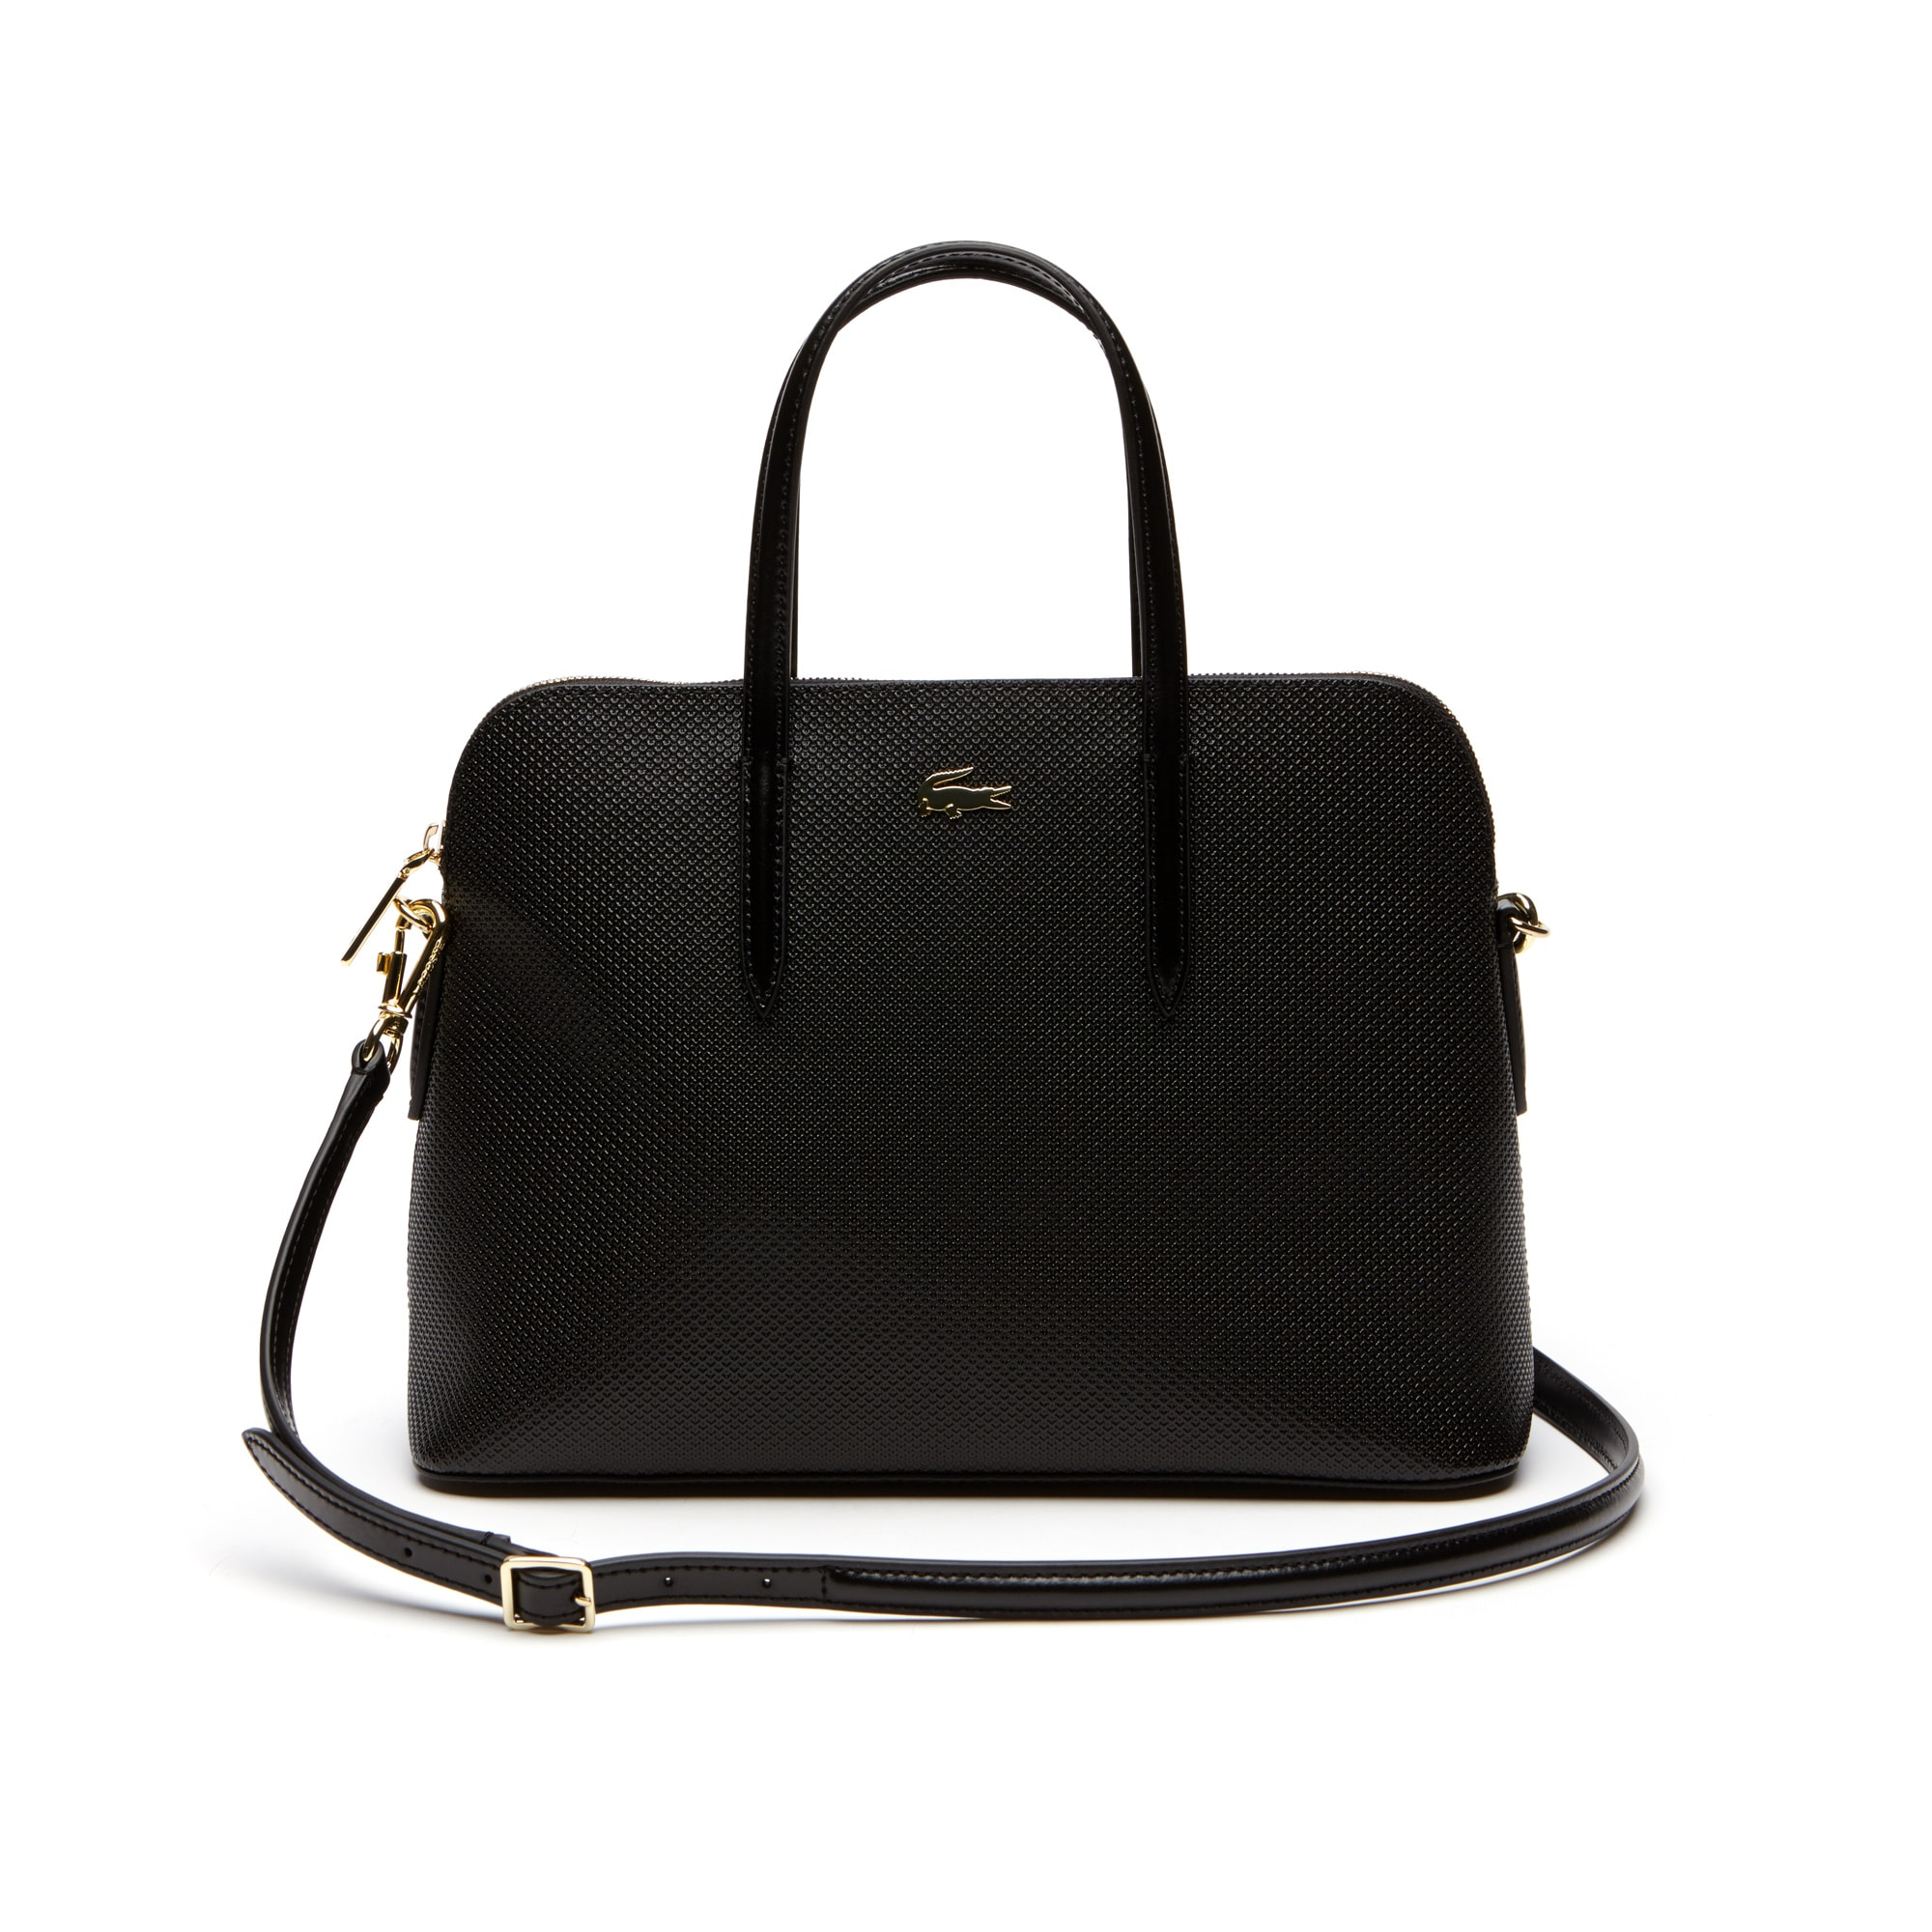 9a2bac84c1 L1212 Bags | Women's Leather Goods | LACOSTE